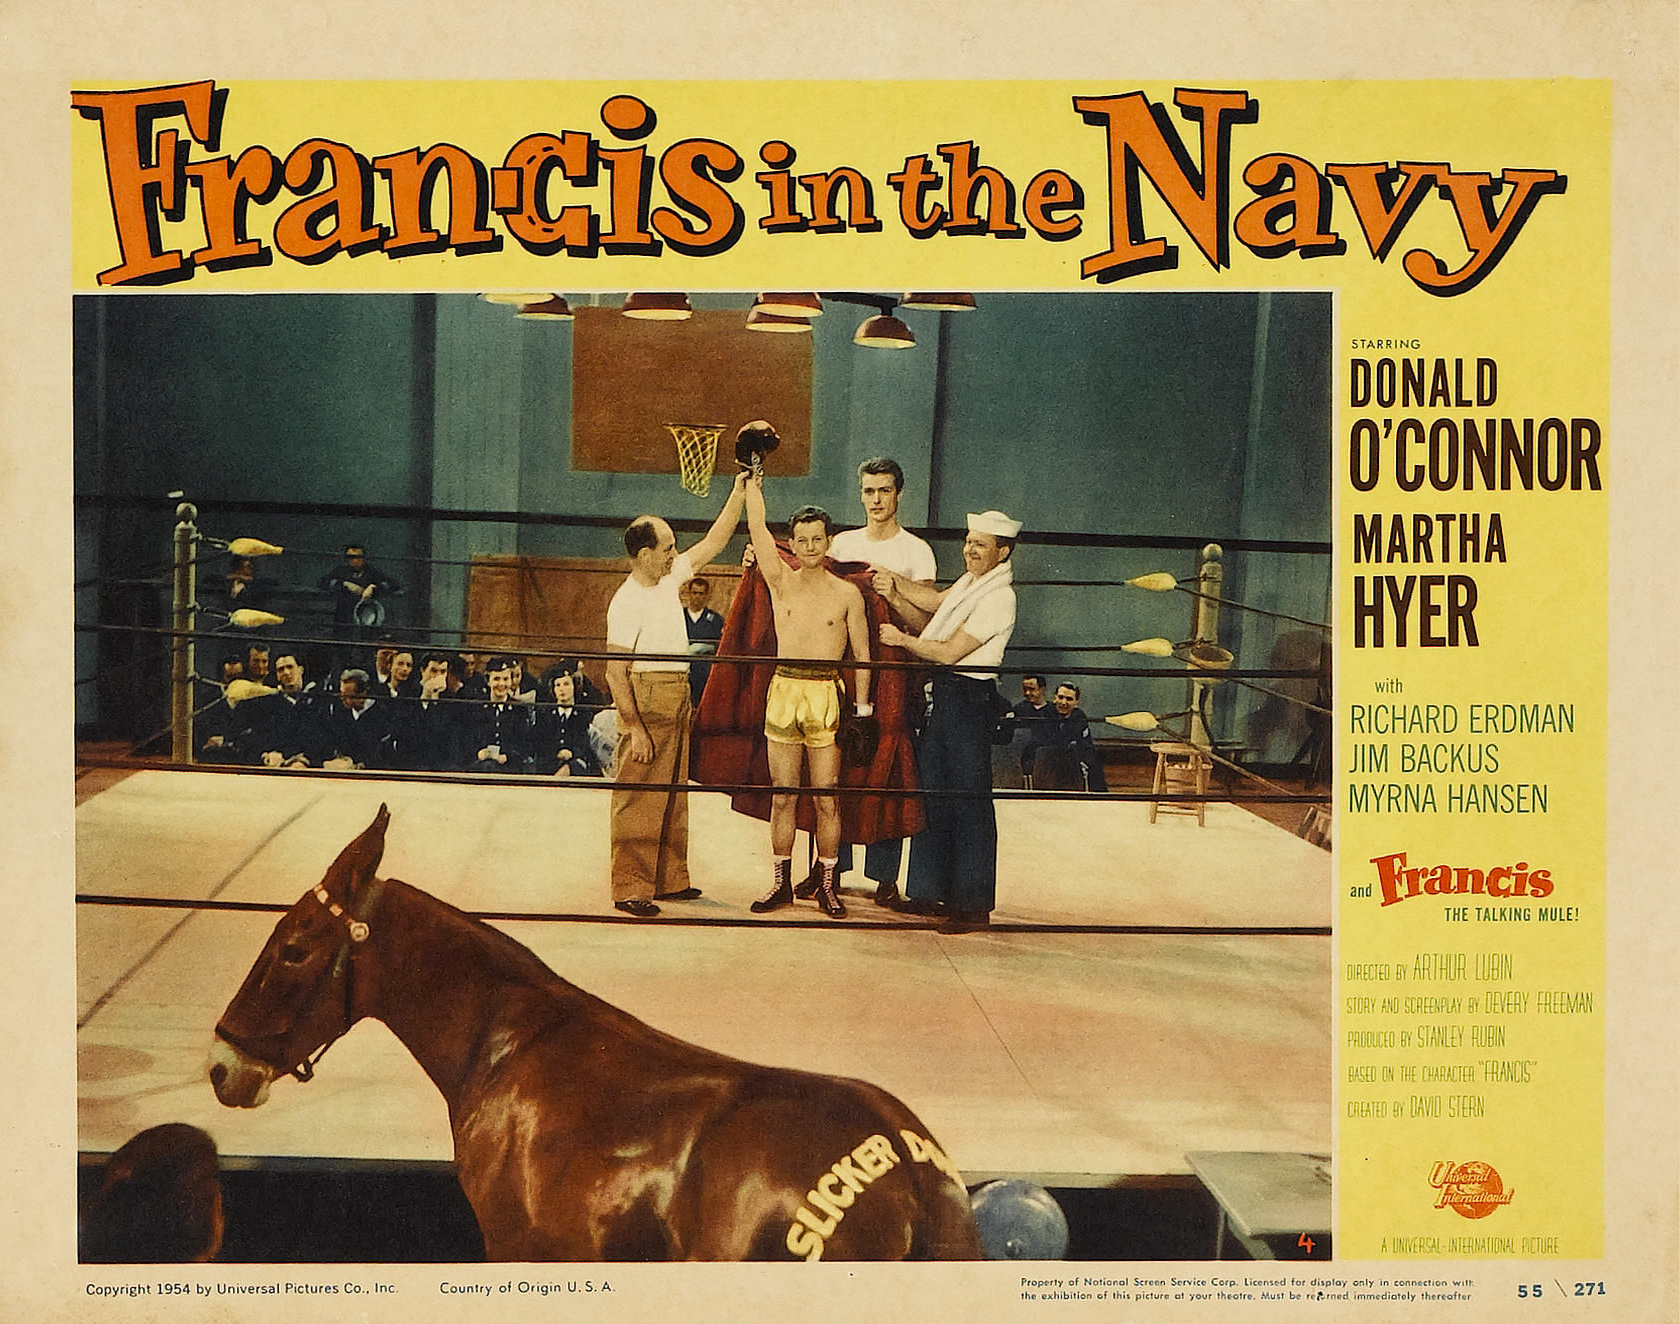 Clint Eastwood, Richard Erdman, Donald O'Connor, Frankie Van, and Molly in Francis in the Navy (1955)